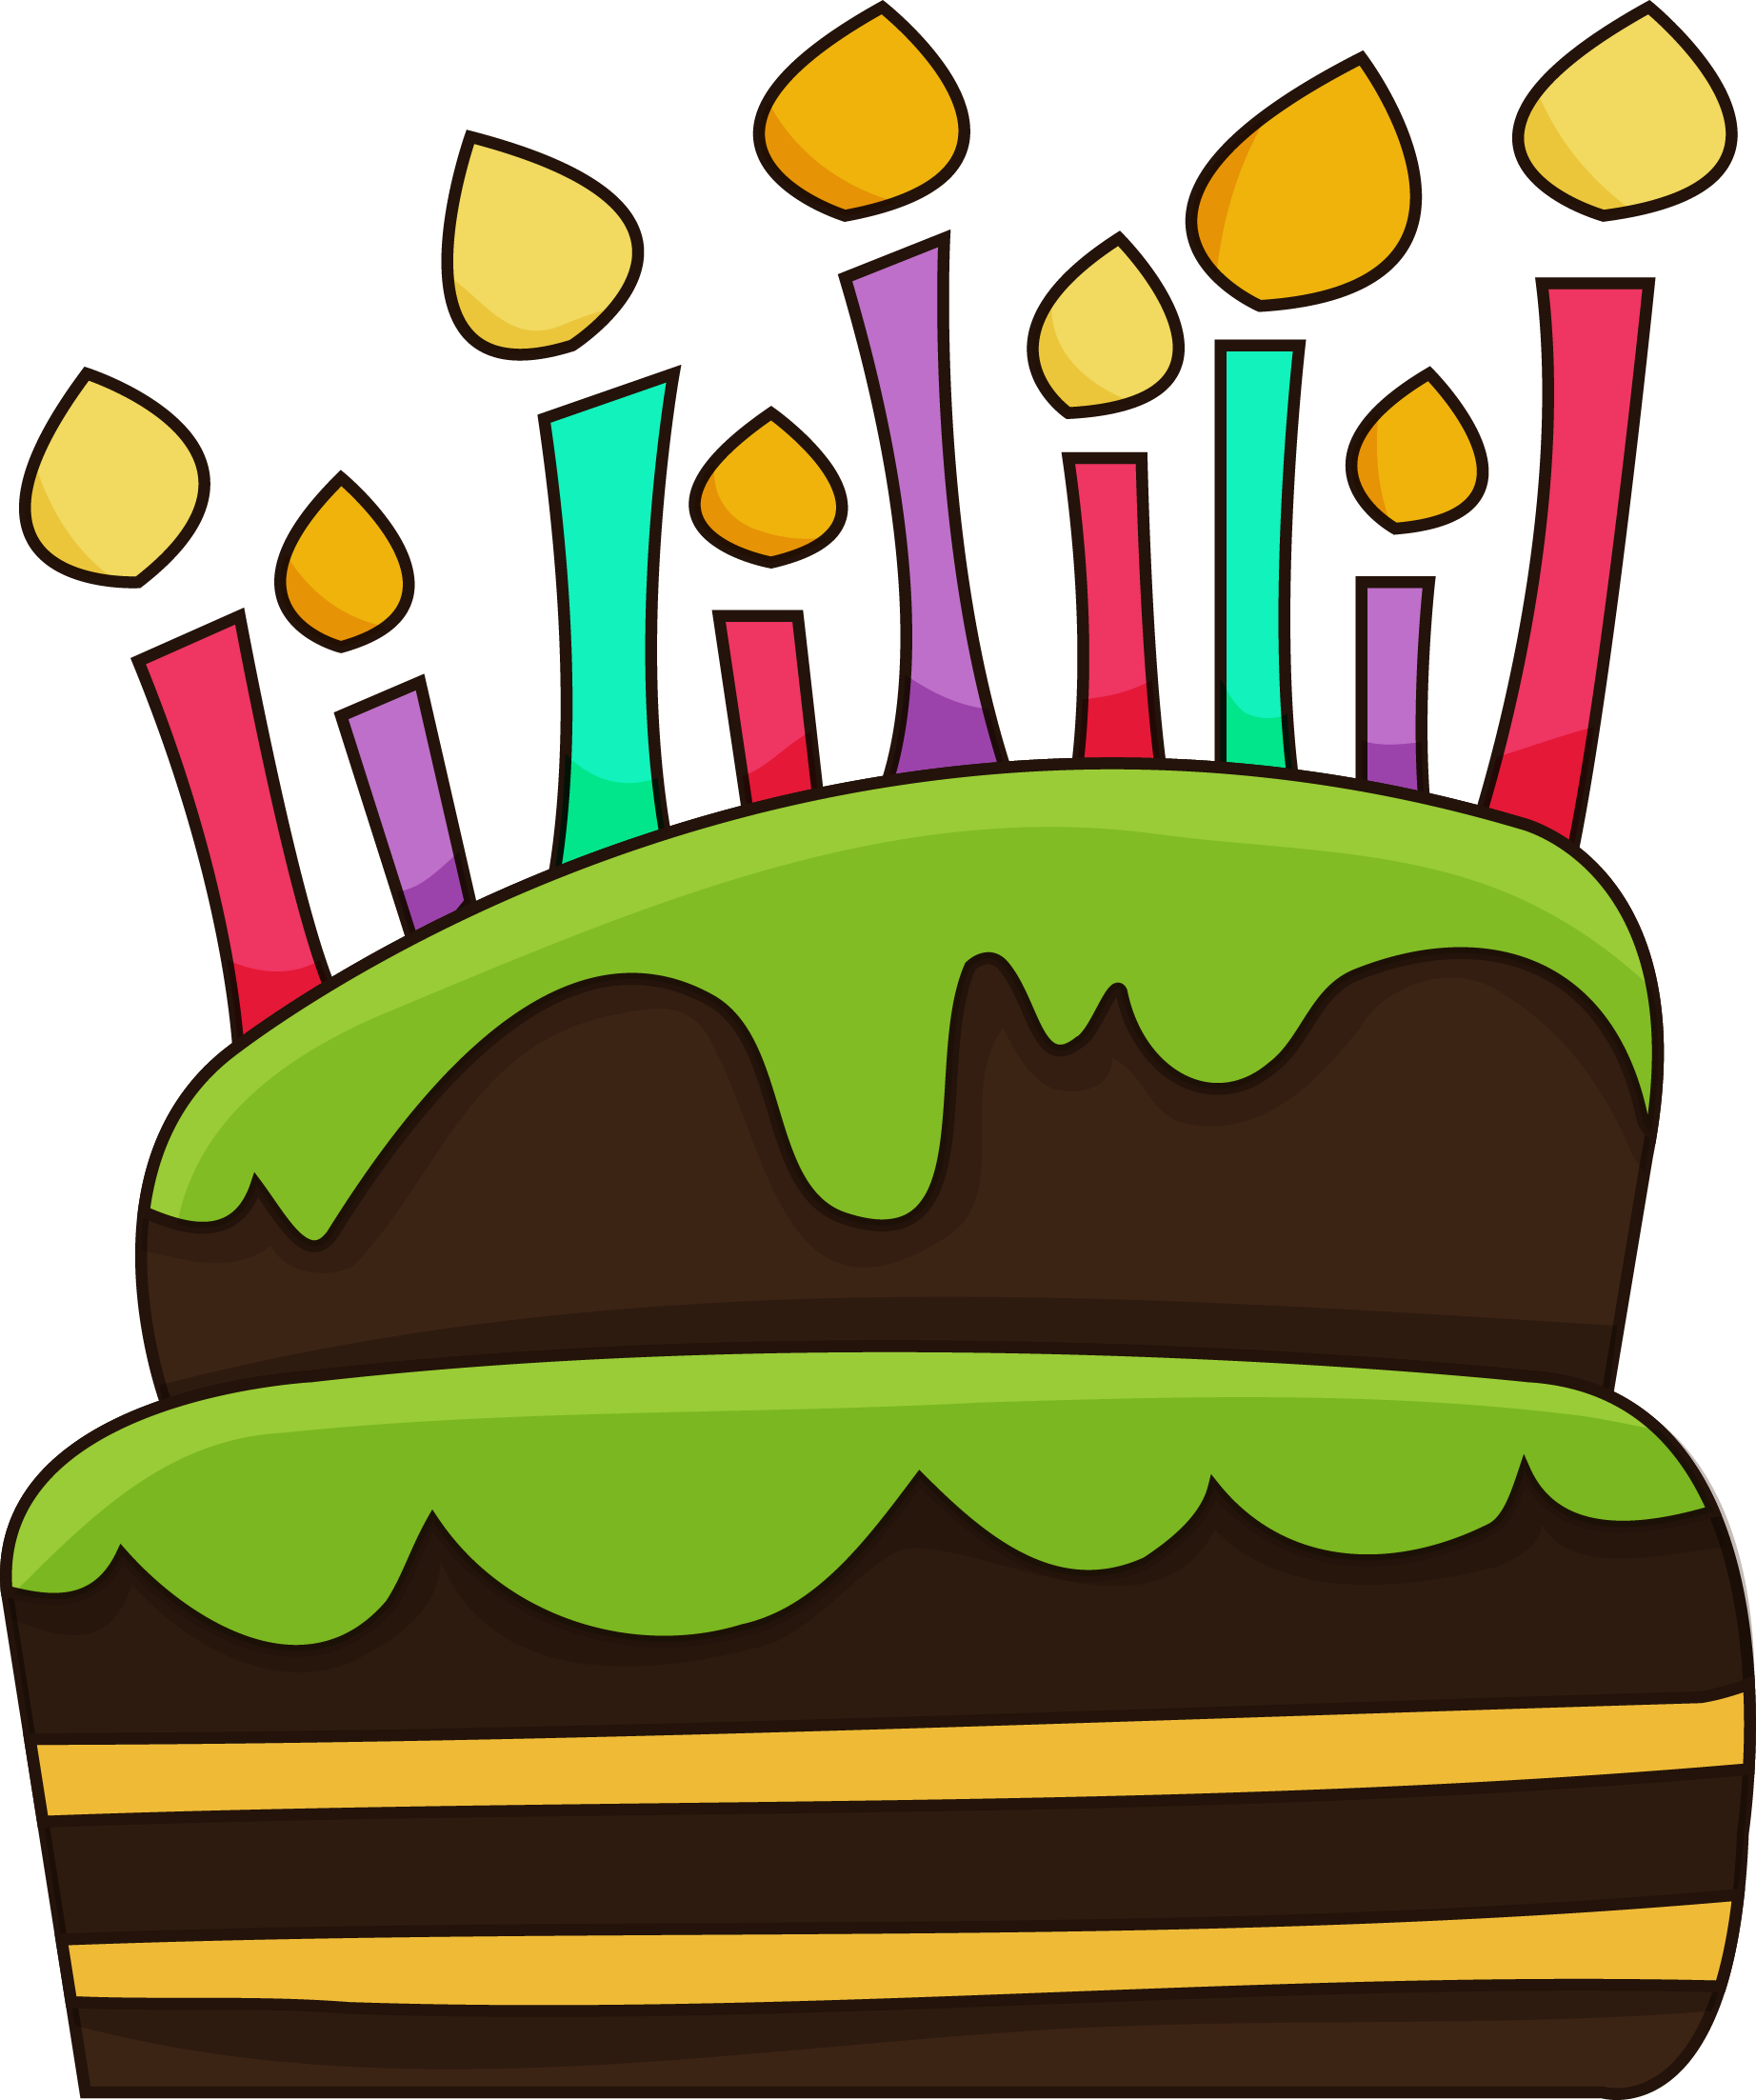 Jelly clipart jelly cake. Anivers rio it s